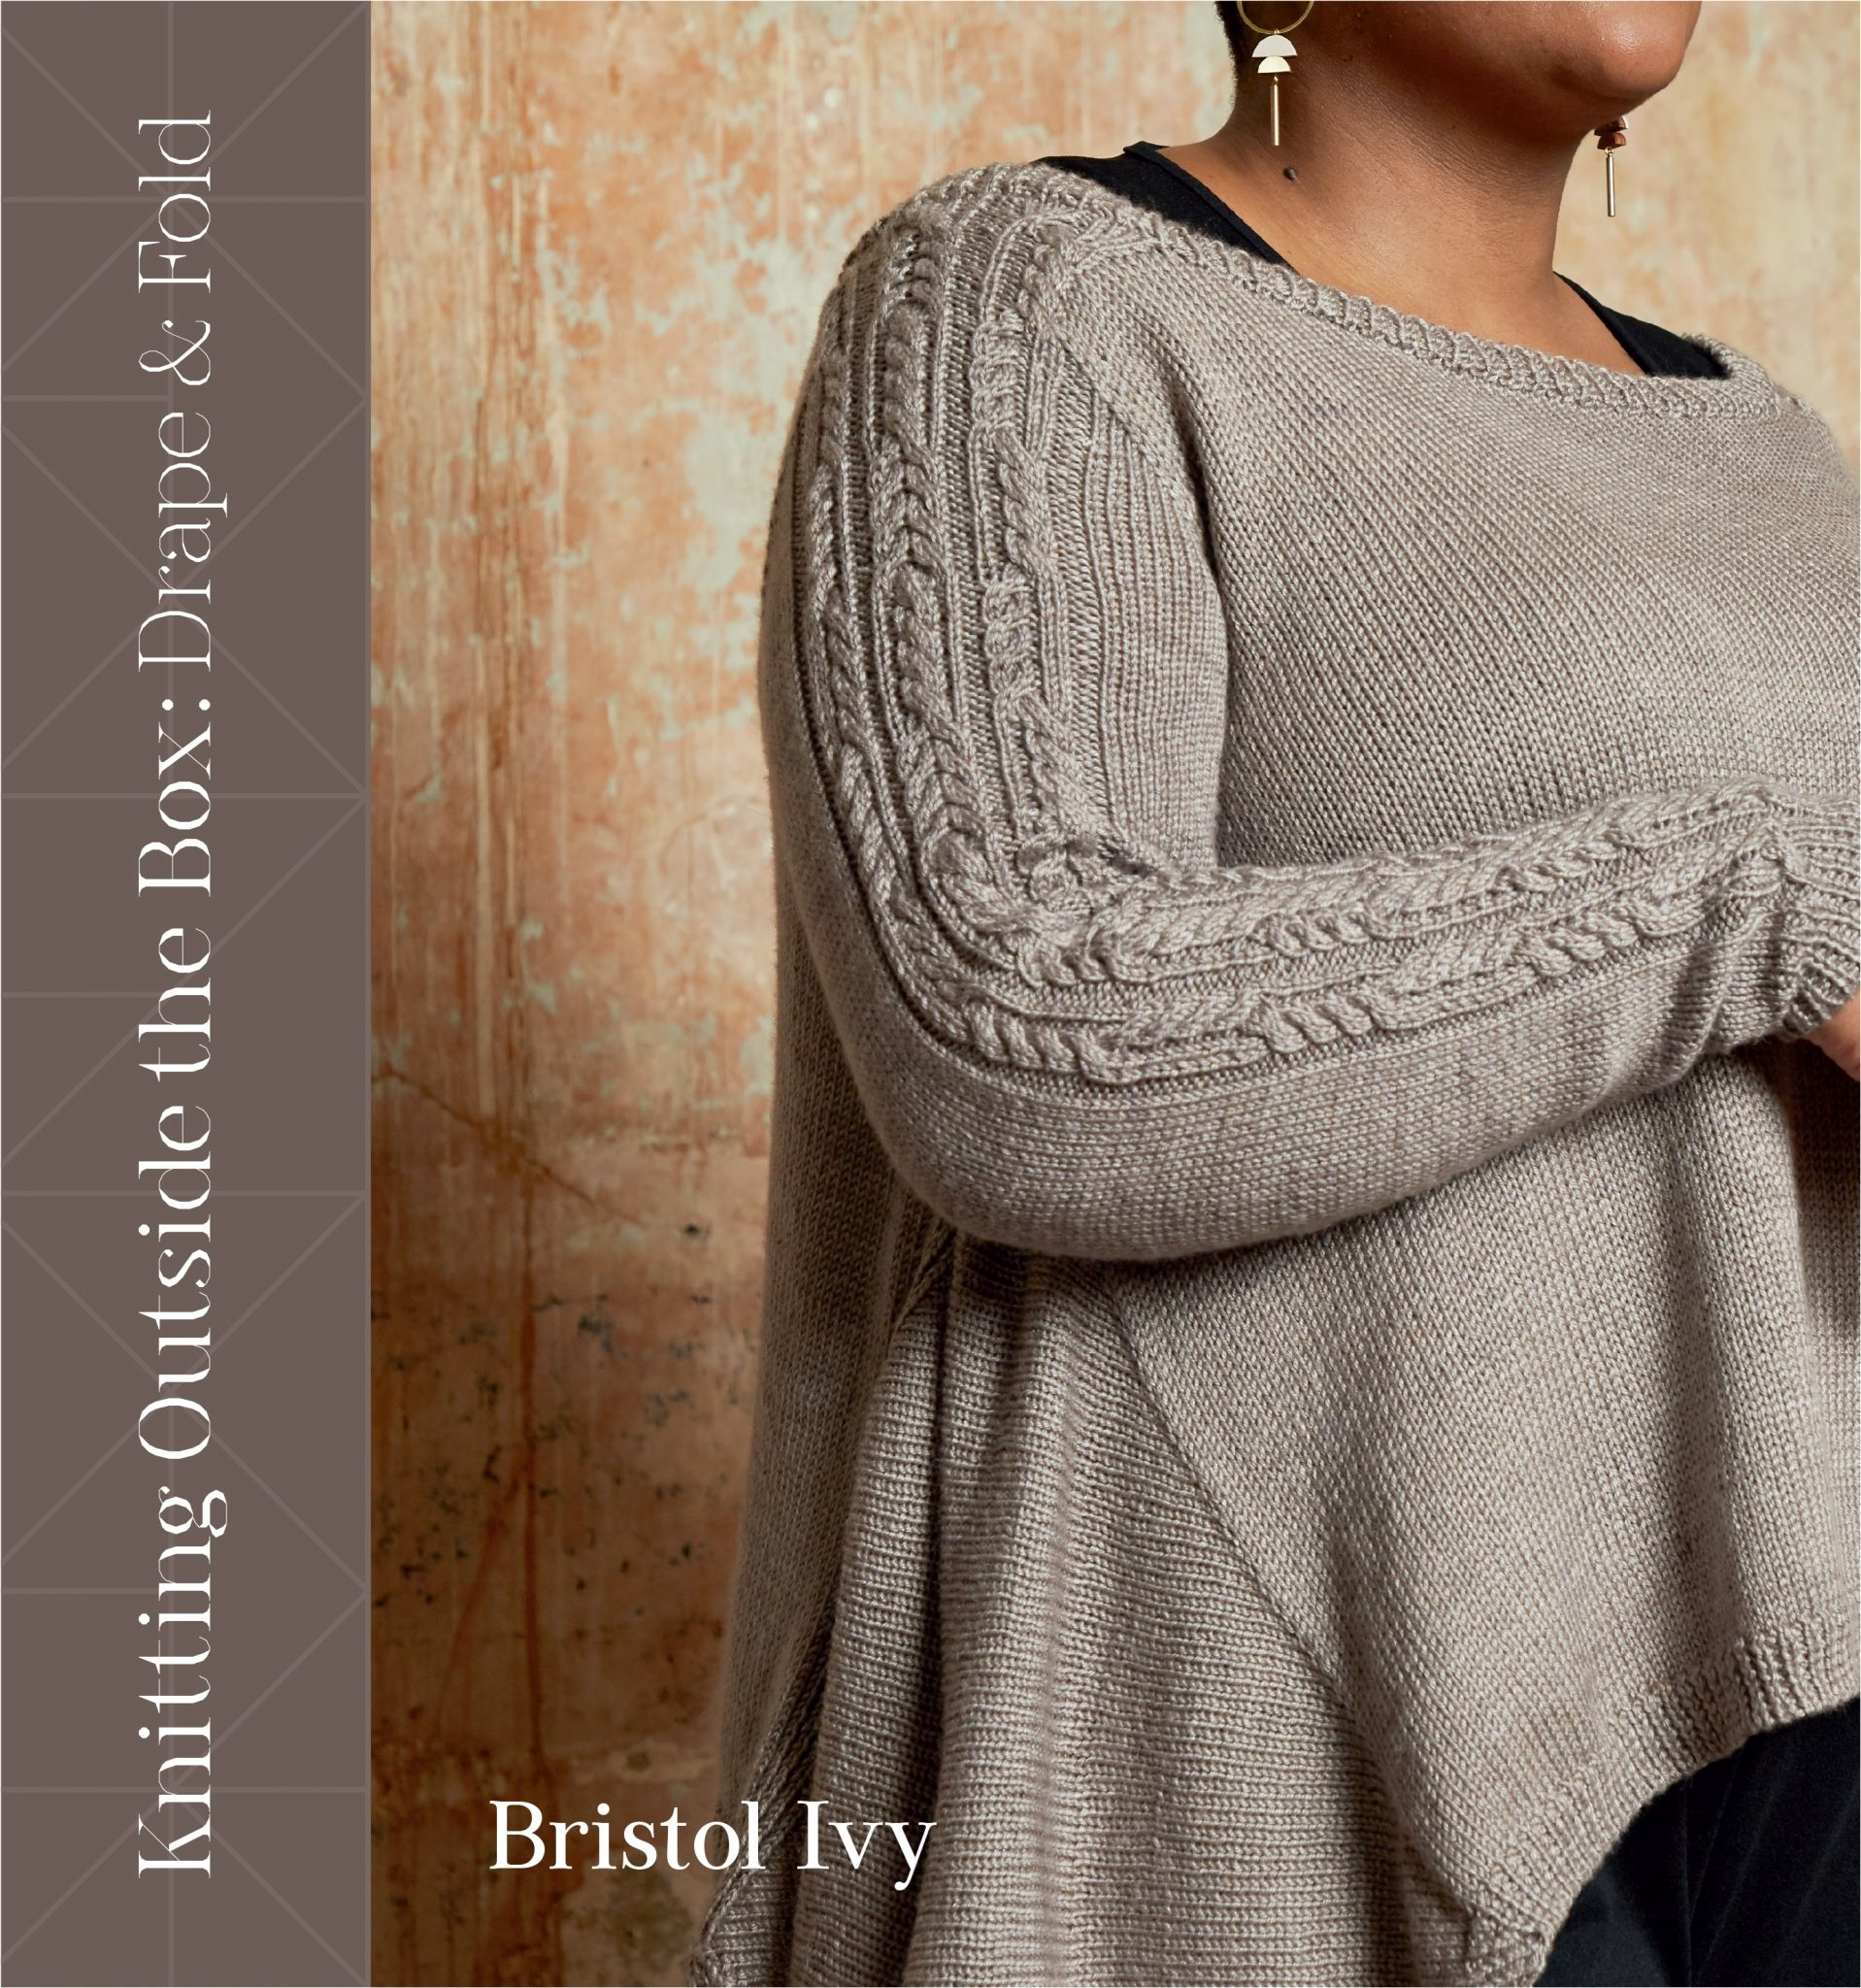 Bristol Ivy - Knitting Outside the Box: Drape and Fold